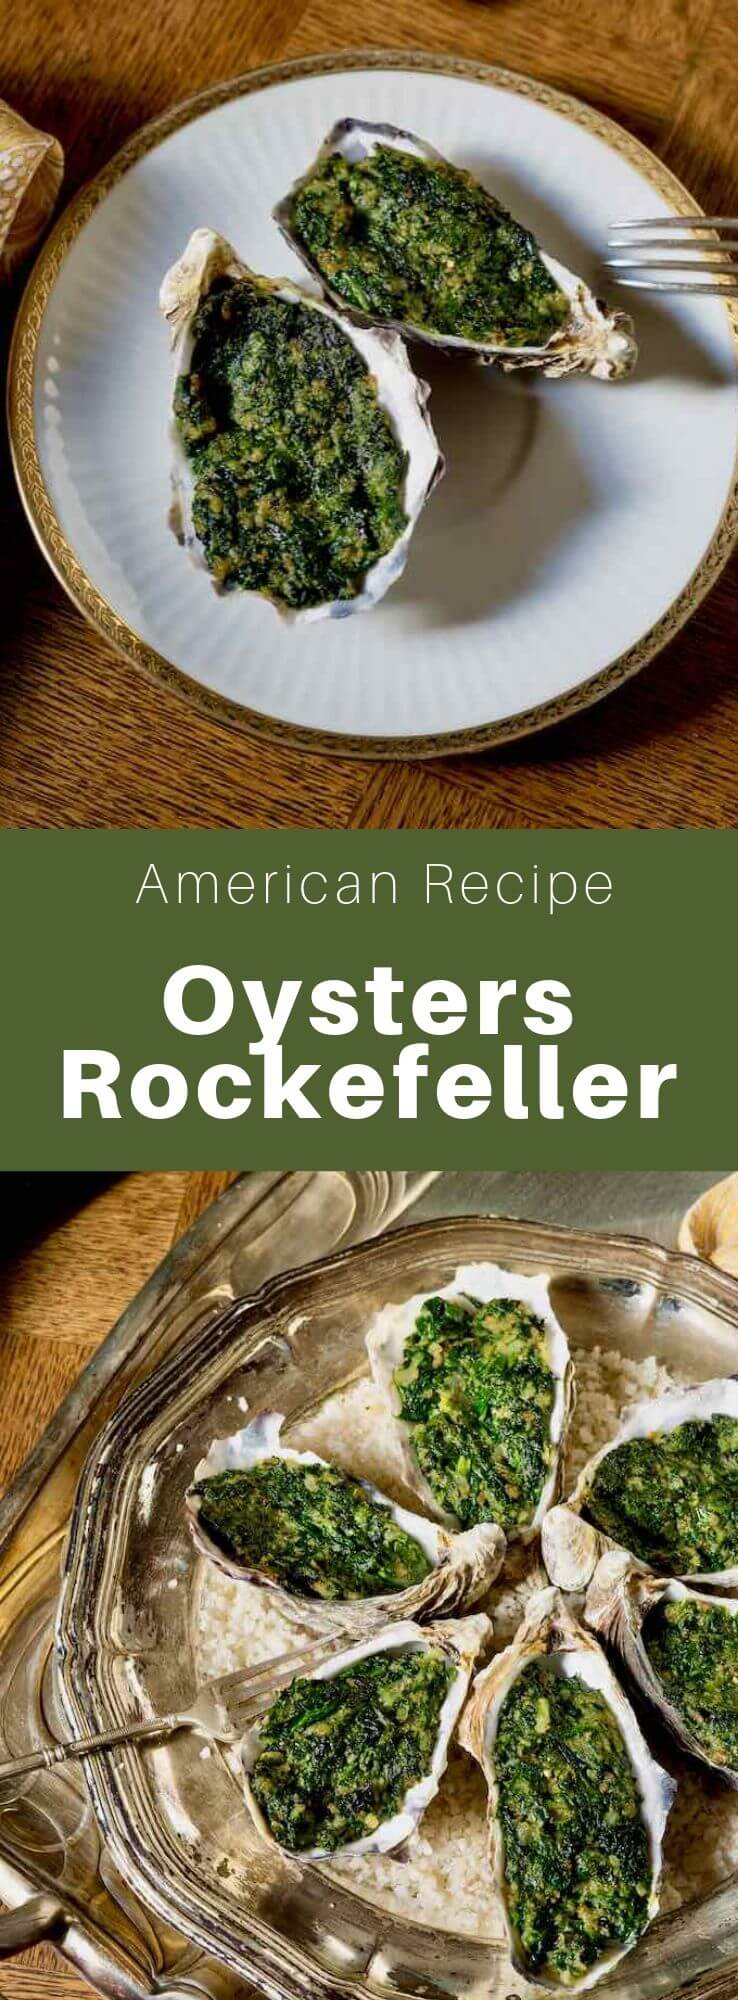 Oysters Rockefeller are a traditional dish of New Orleans consisting in oysters topped with butter sauce, spinach, and bread crumbs, that are then toasted. #SouthernFood #SouthernRecipe #SouthernCuisine #AmericanRecipe #AmericanFood #AmericanCuisine #WorldCuisine #196flavors